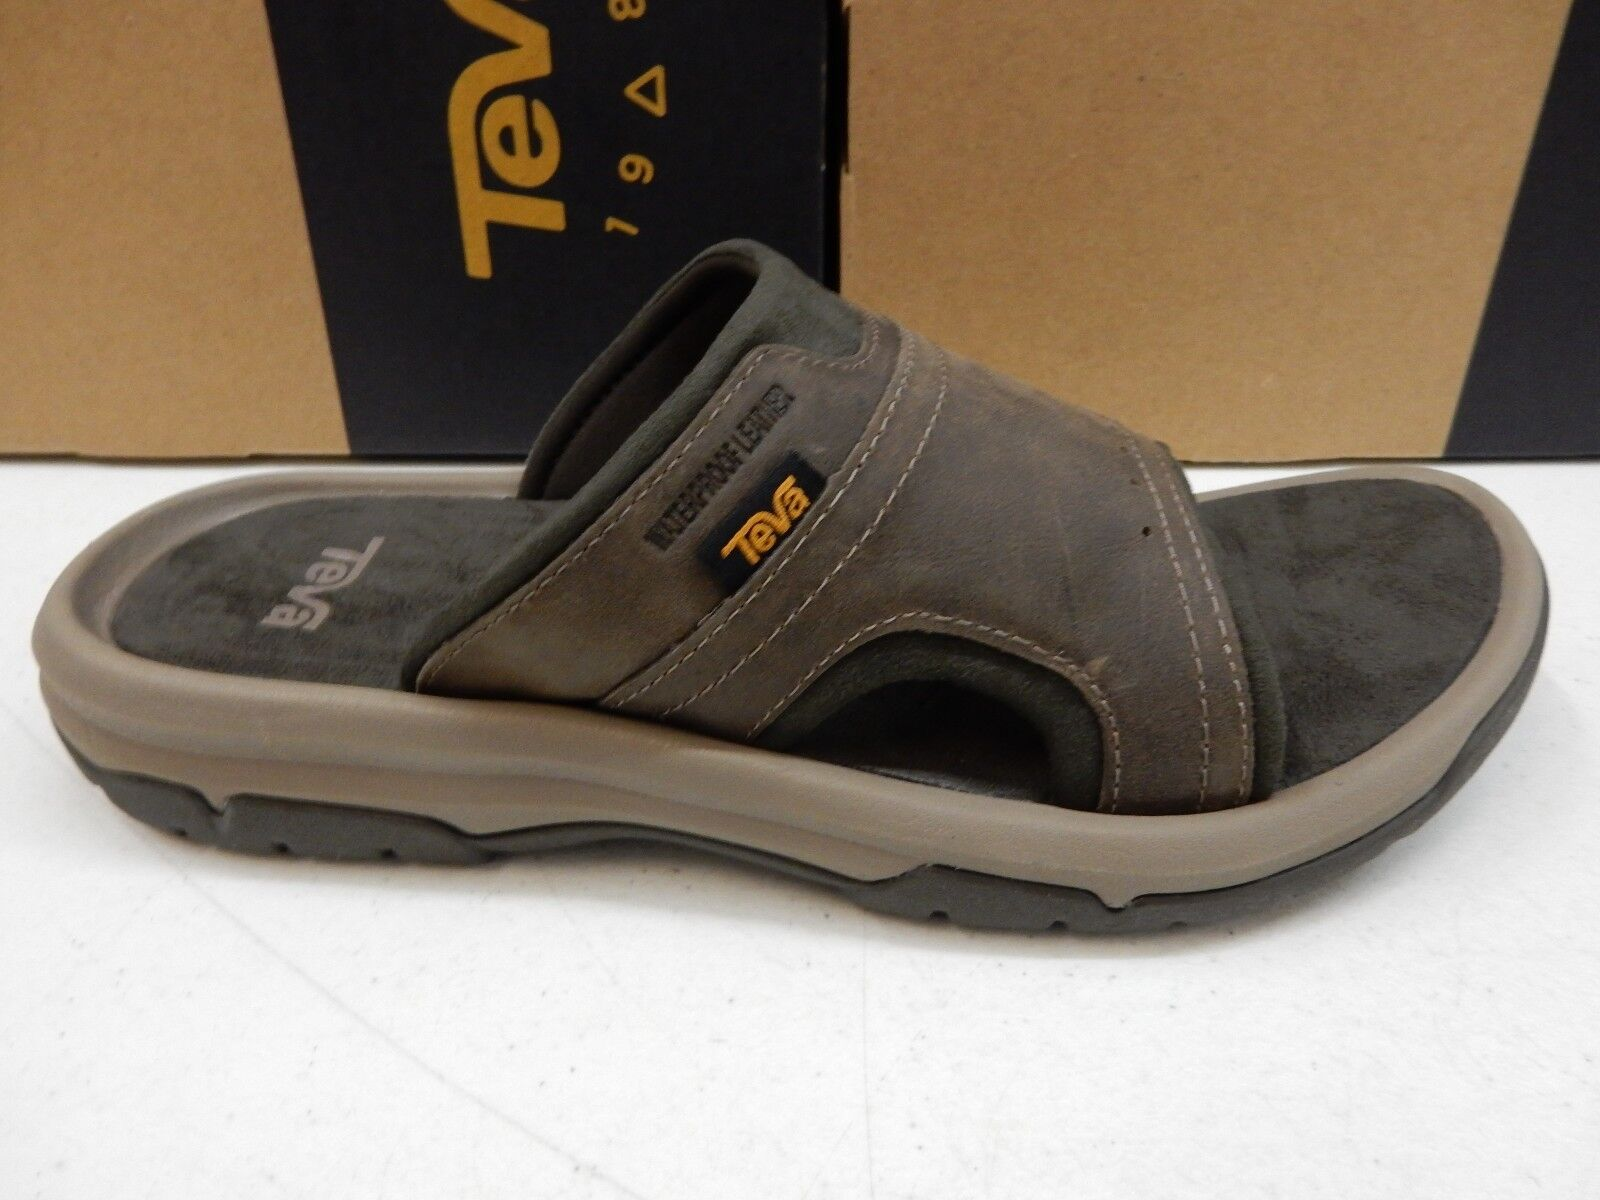 2b0e6ab5effea Teva Mens Sandals Langdon Slide Walnut Size 9